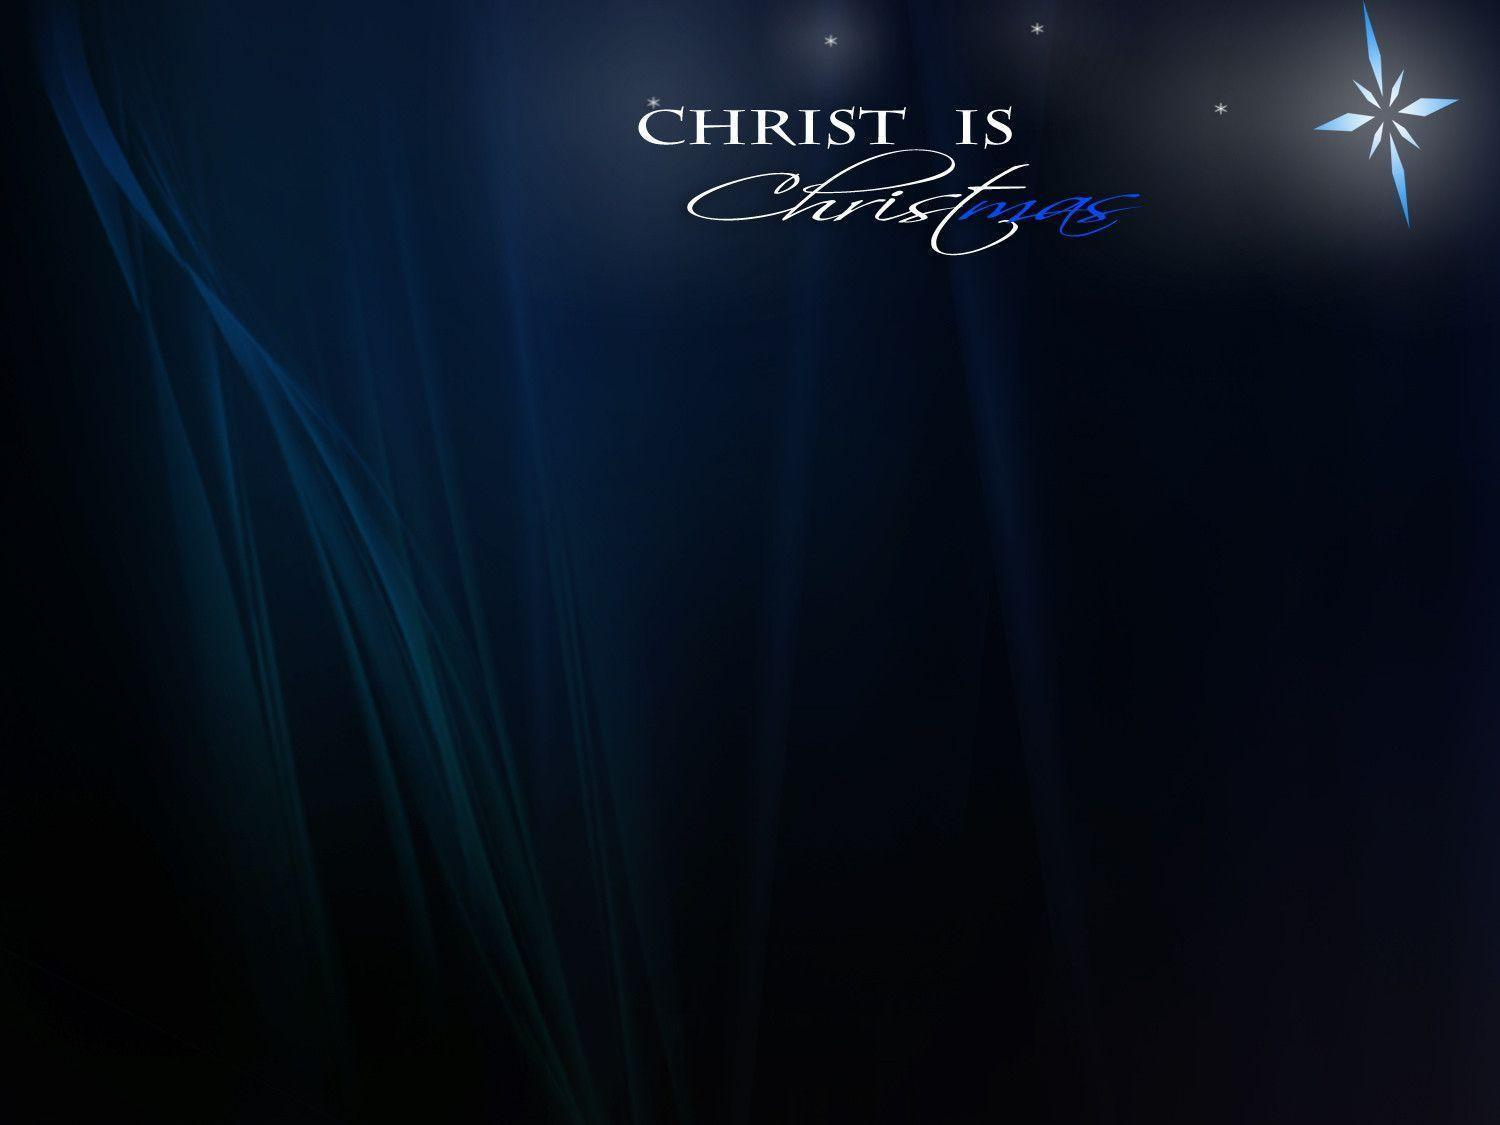 christian christmas desktop wallpapers